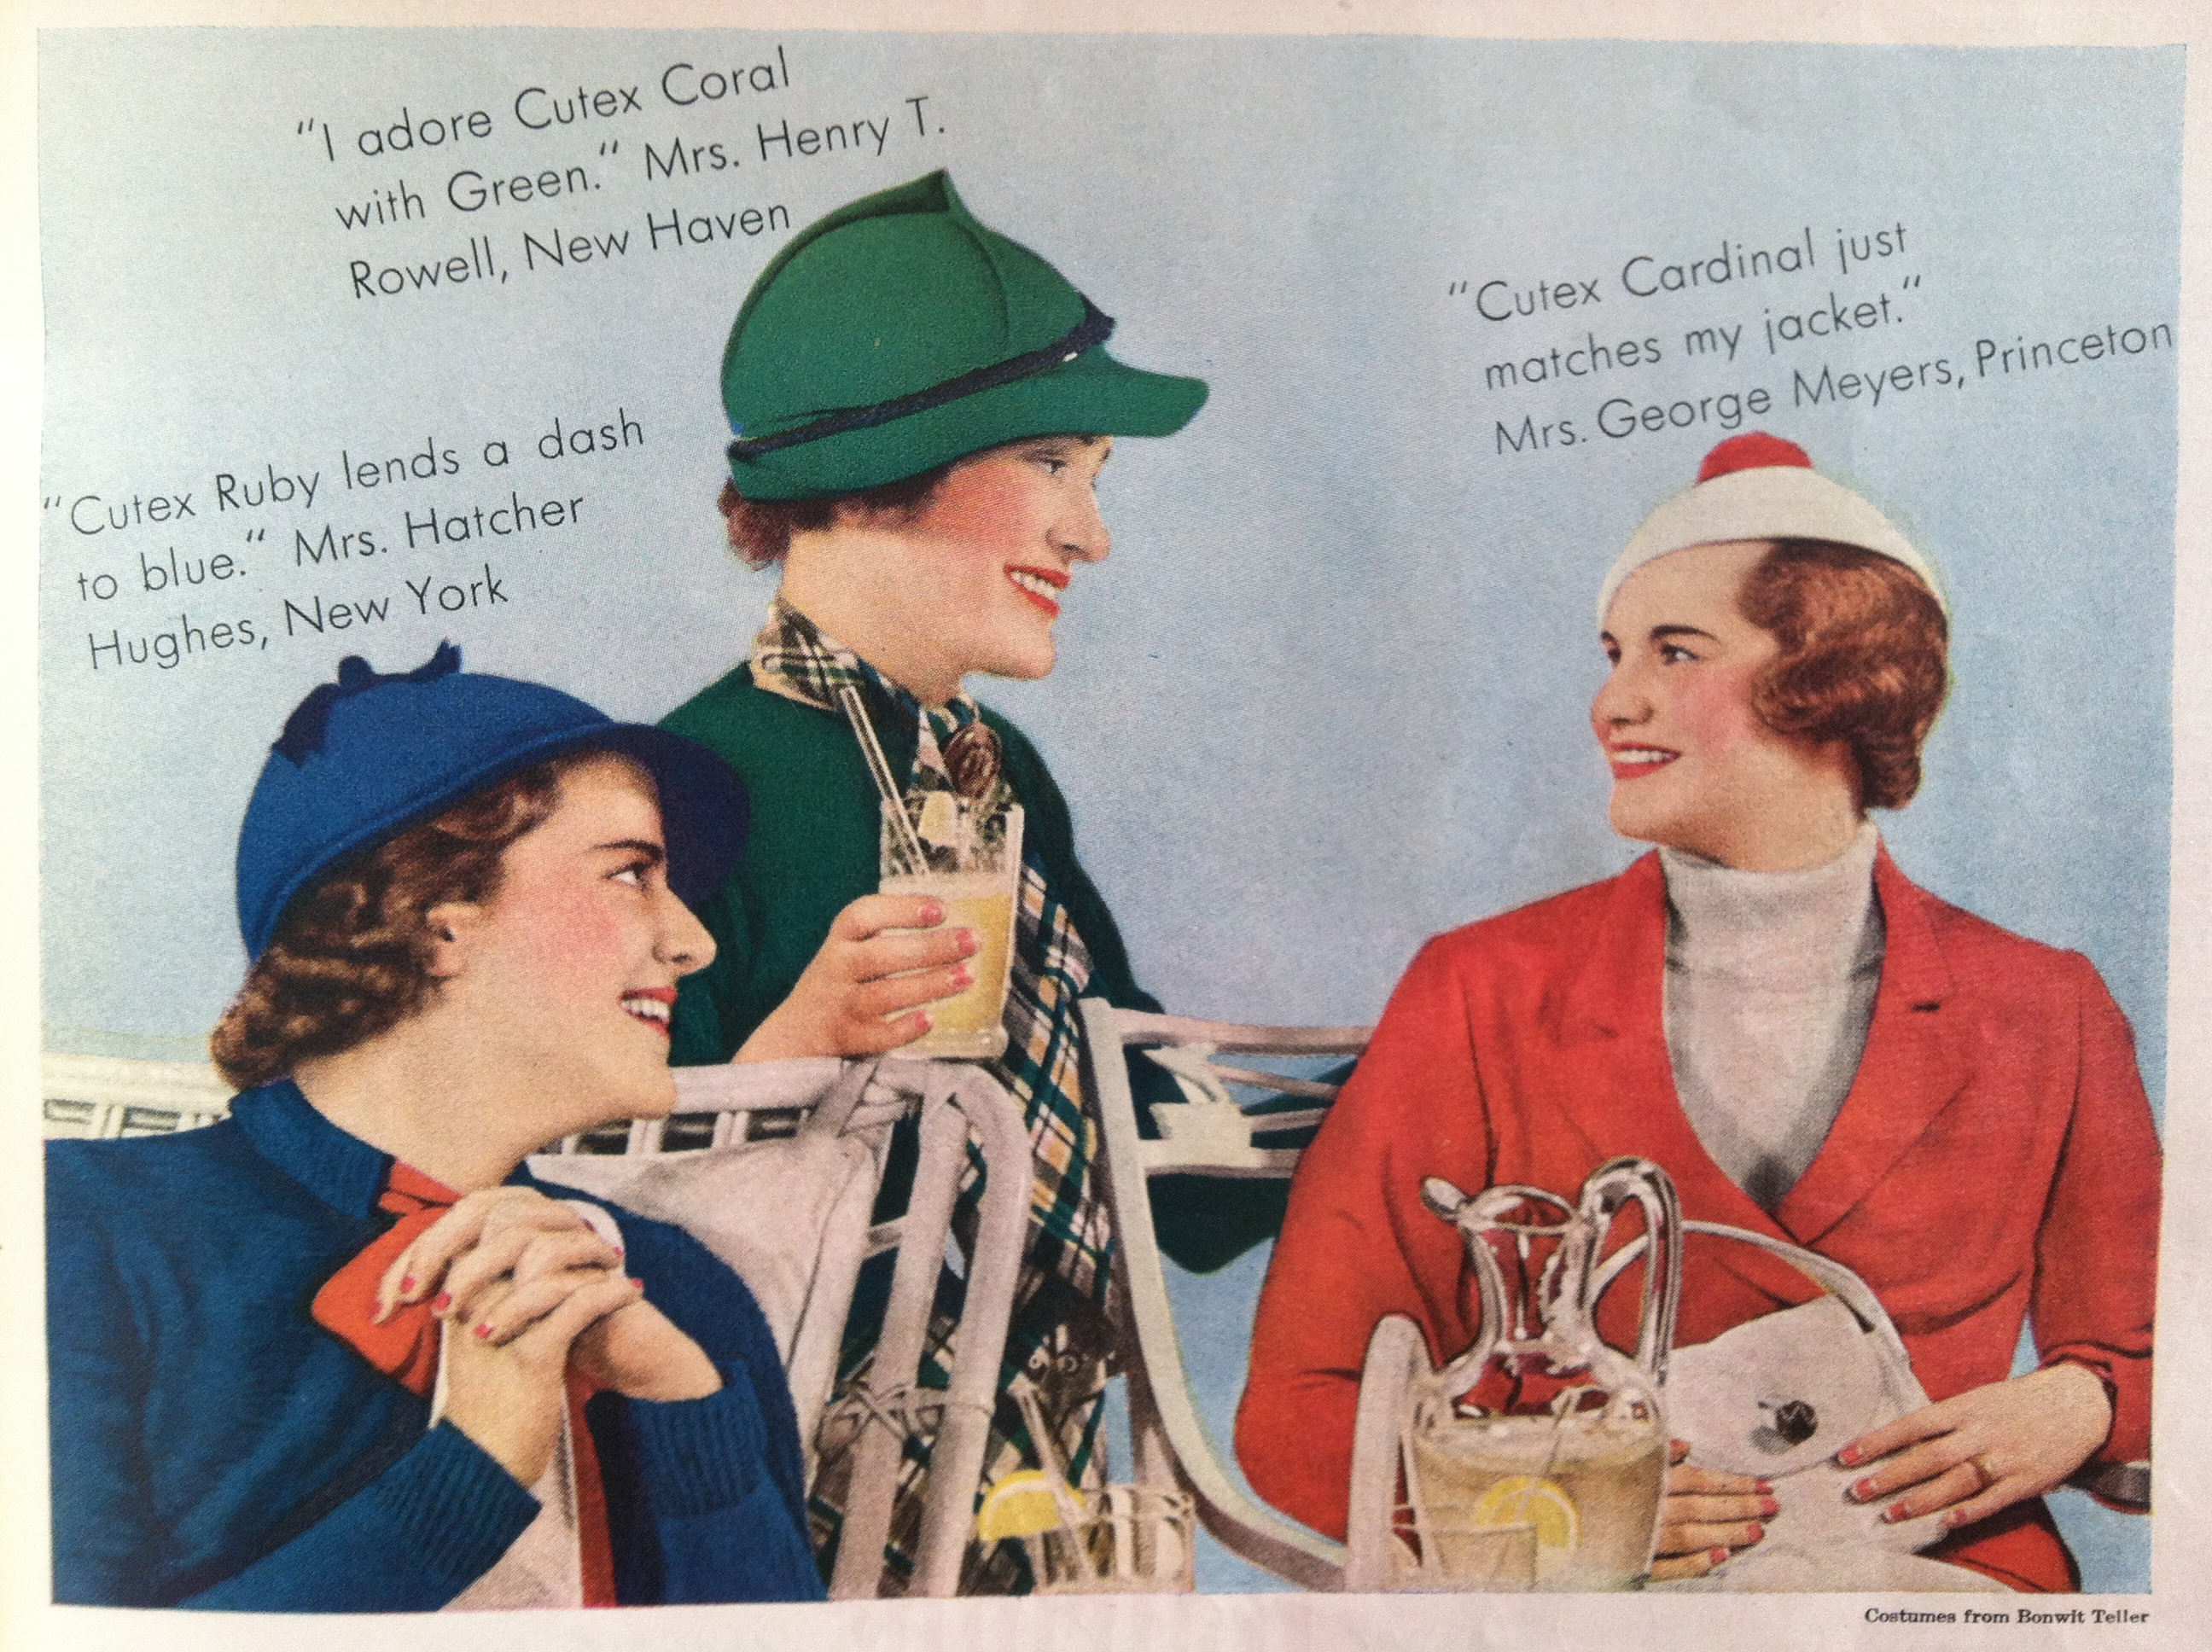 Ladies Lounge: Manicures of the early 20th Century